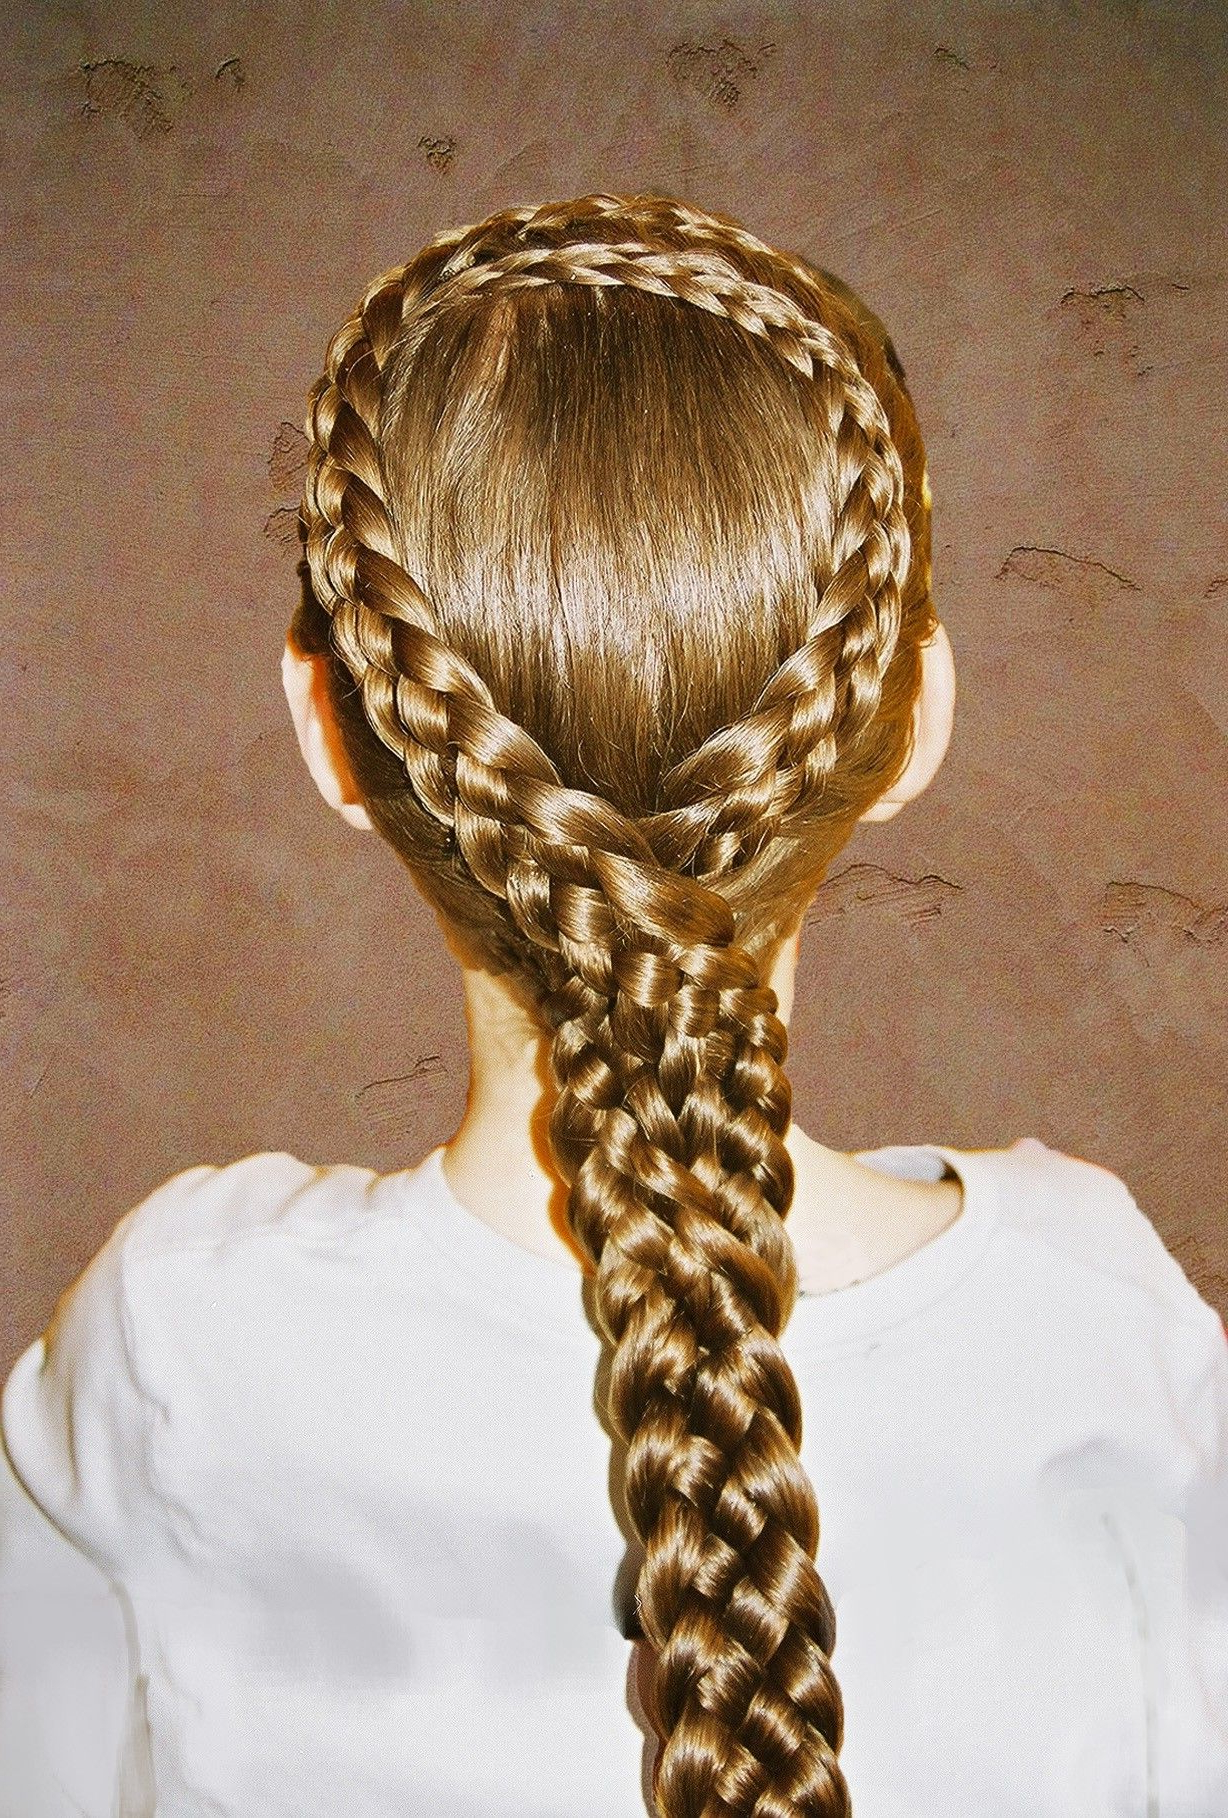 Most Popular Mermaid Inception Braid Hairstyles With Regard To Diy 2014 Five Strand Dutch Lace Teardrop Braid Hairstyles (View 12 of 20)